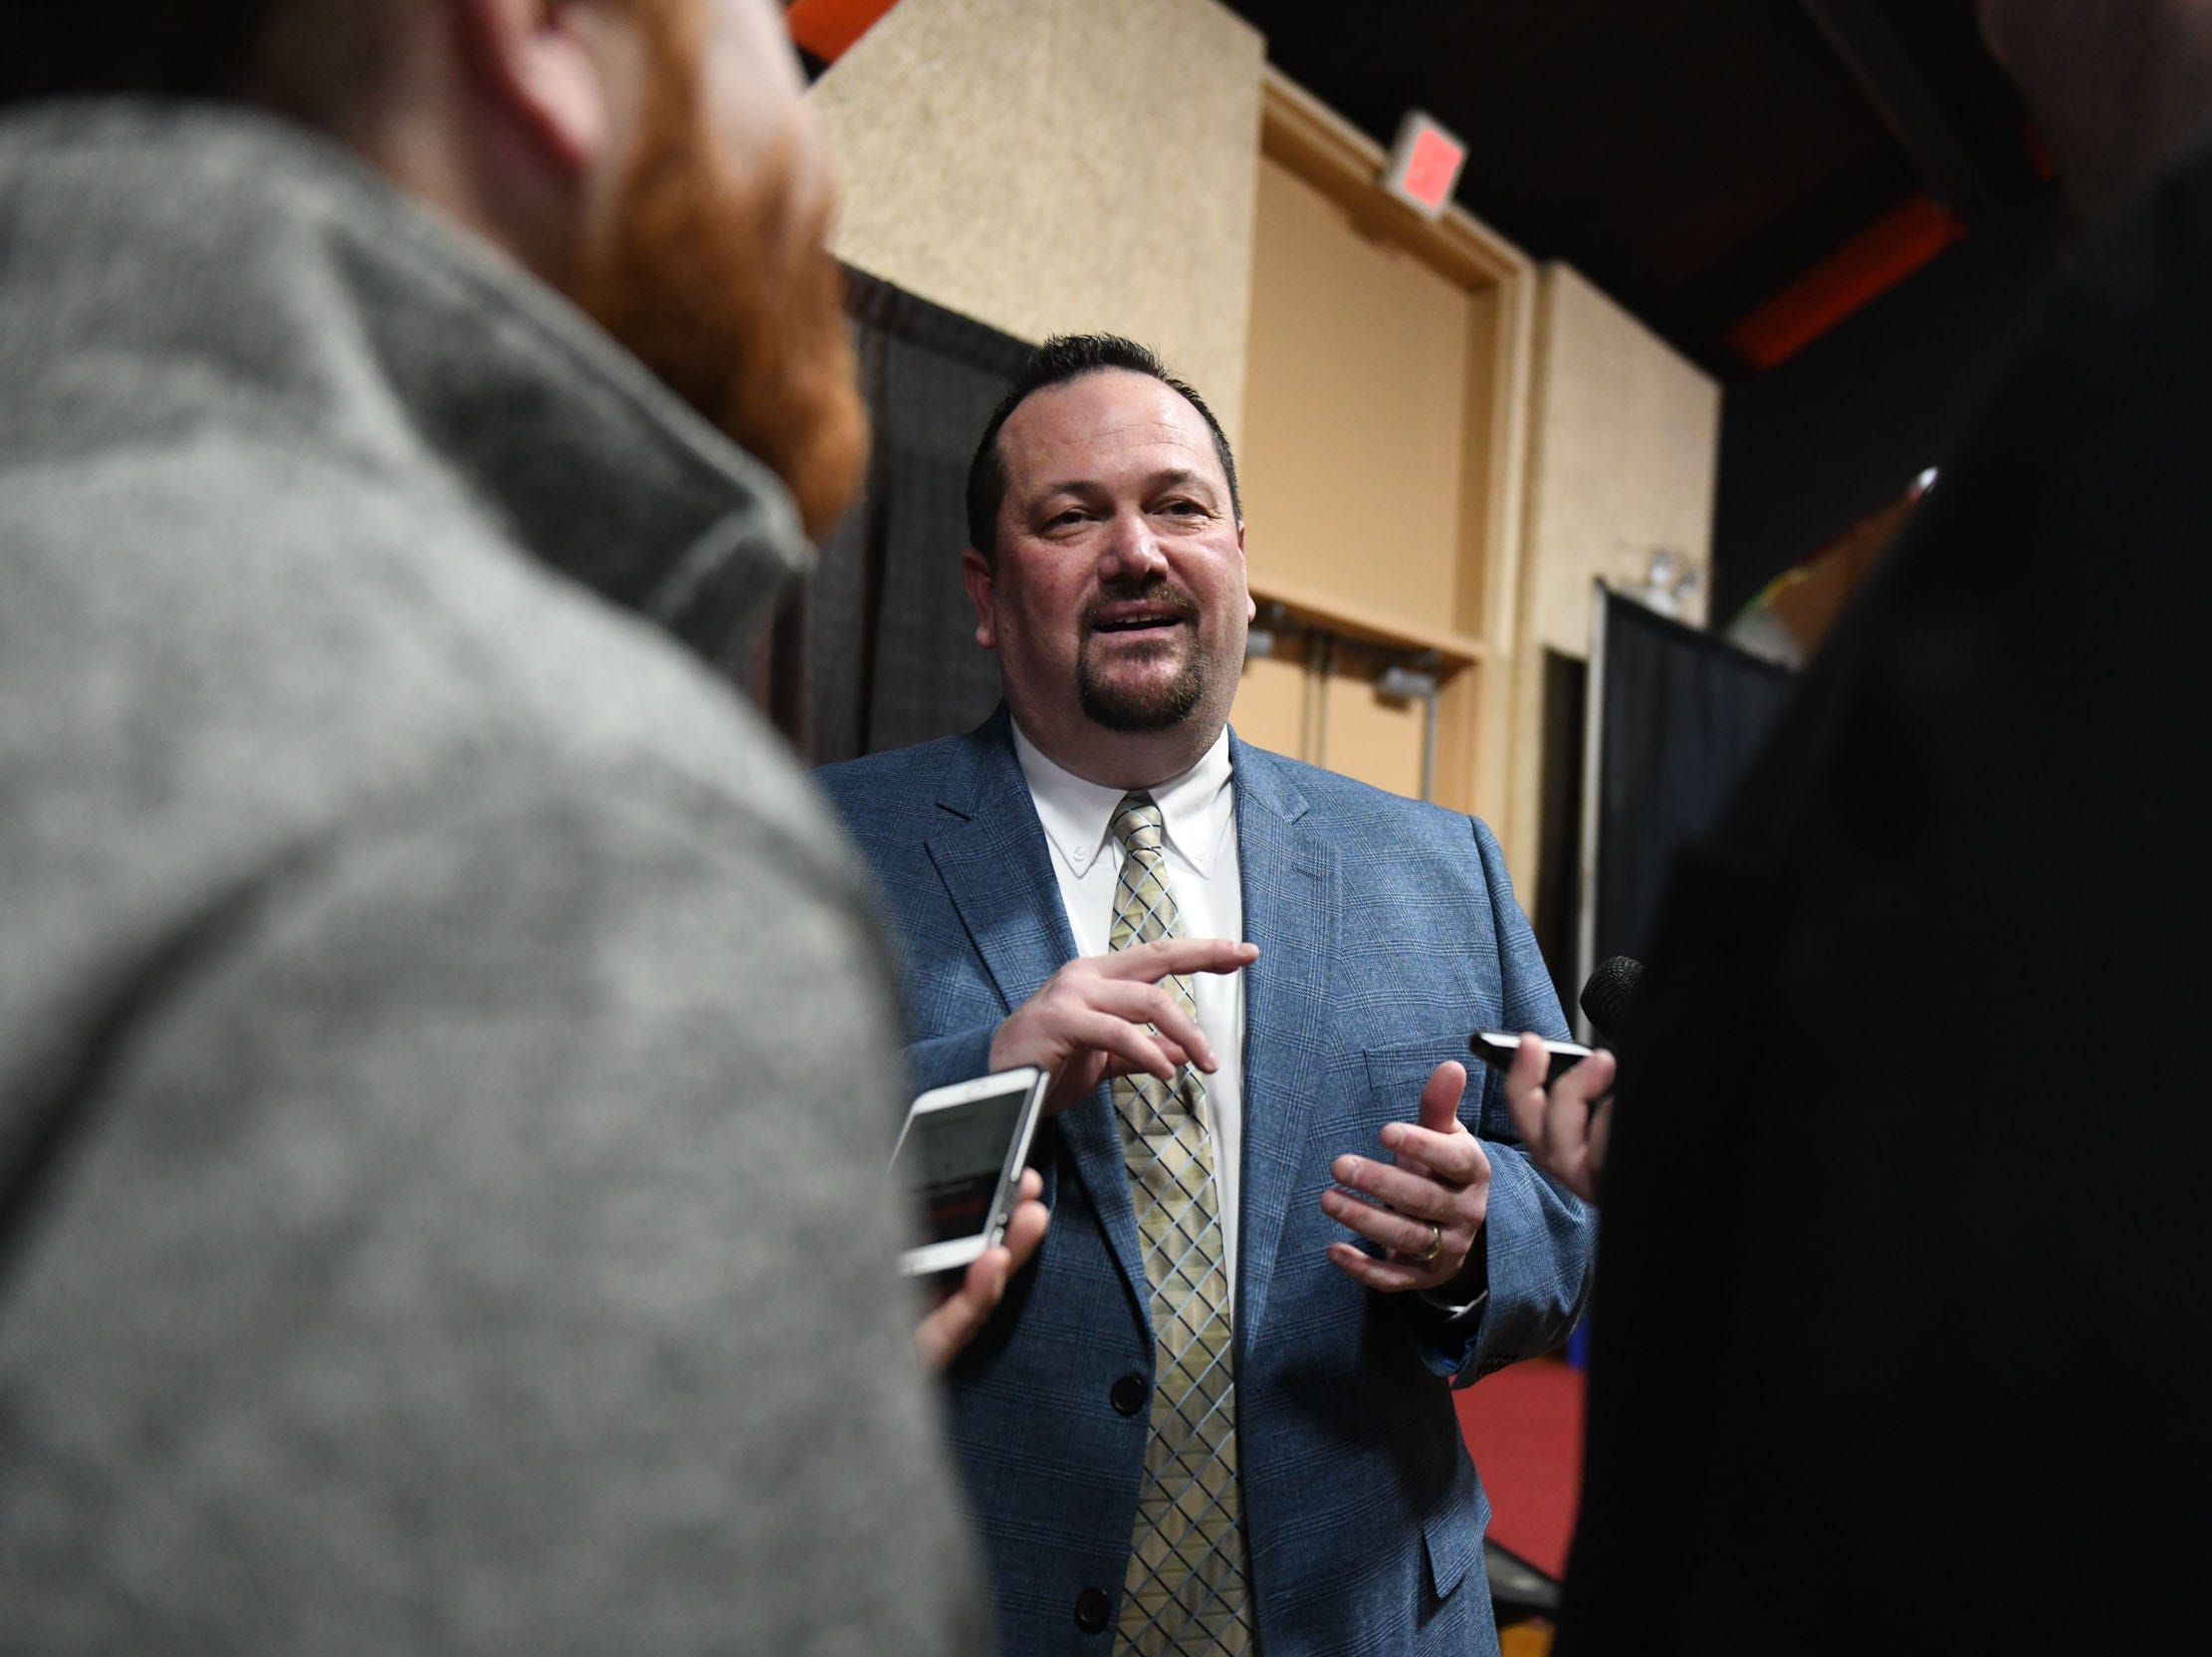 Chris Bitters, General Manager Delmarva Shorebirds, talks to the media during the 18th annual Hot Stove Banquet on Thursday, Jan 24, 2019 at the Wicomico Youth & Civic Center.